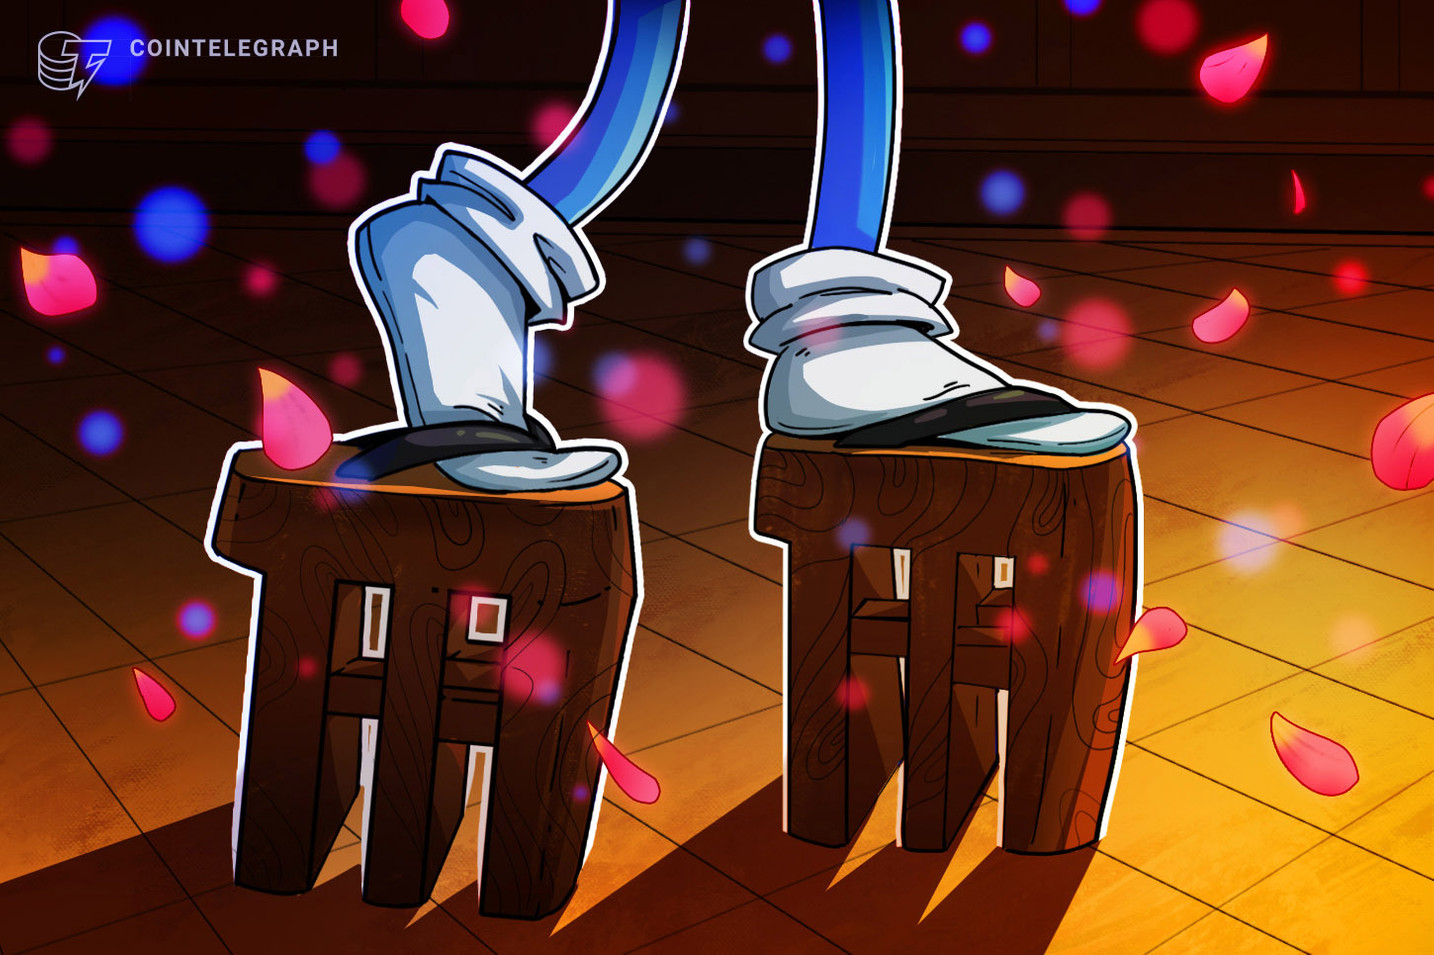 Japan's FSA asks cryptocurrency industry group to introduce FATF travel rule